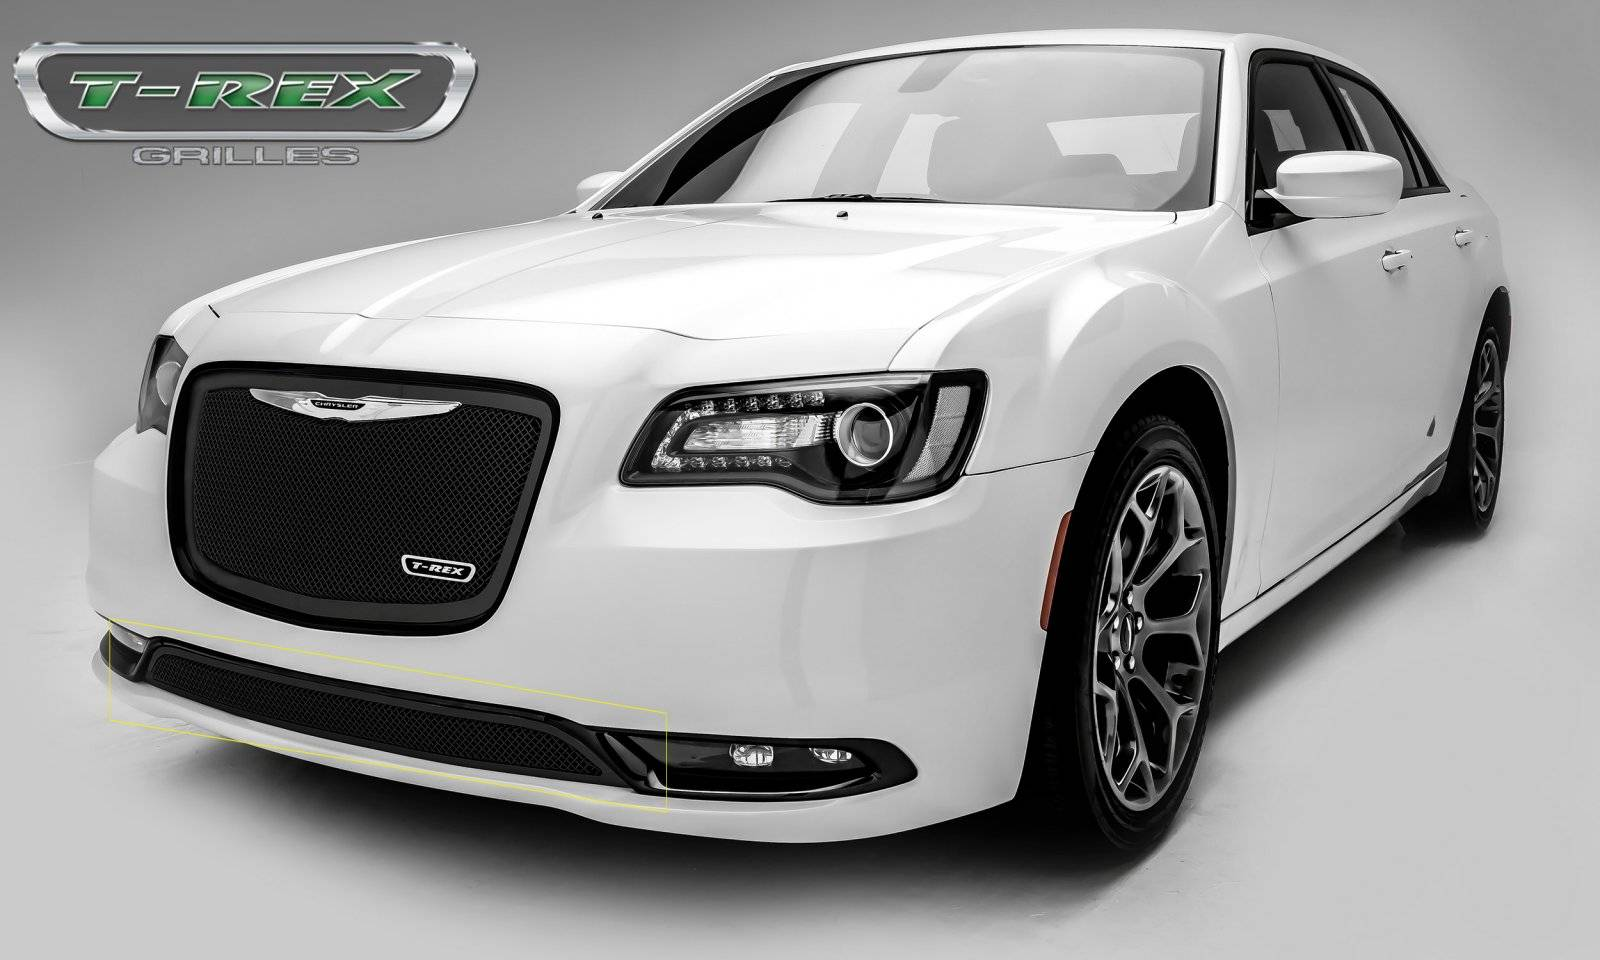 Chrysler 300 - Upper Class Series - Bumper Grille Overlay with Black Powder Coat Finish - Pt # 52436